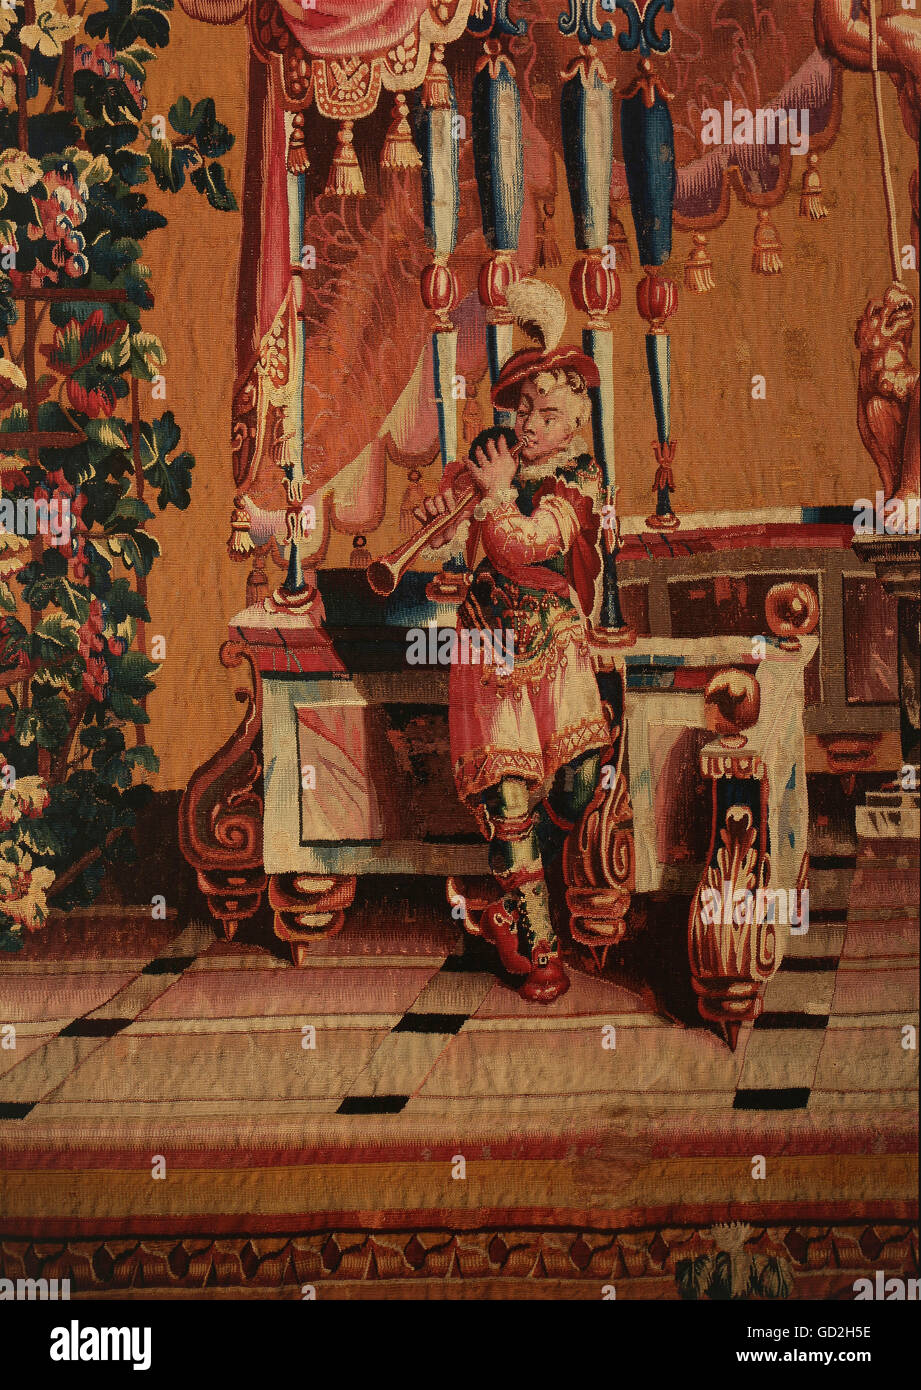 fine arts, tapestry, Dionysus with thyrsos, detail, clarinet player, from the grotesques series, by Philippe Behagle, Stock Photo